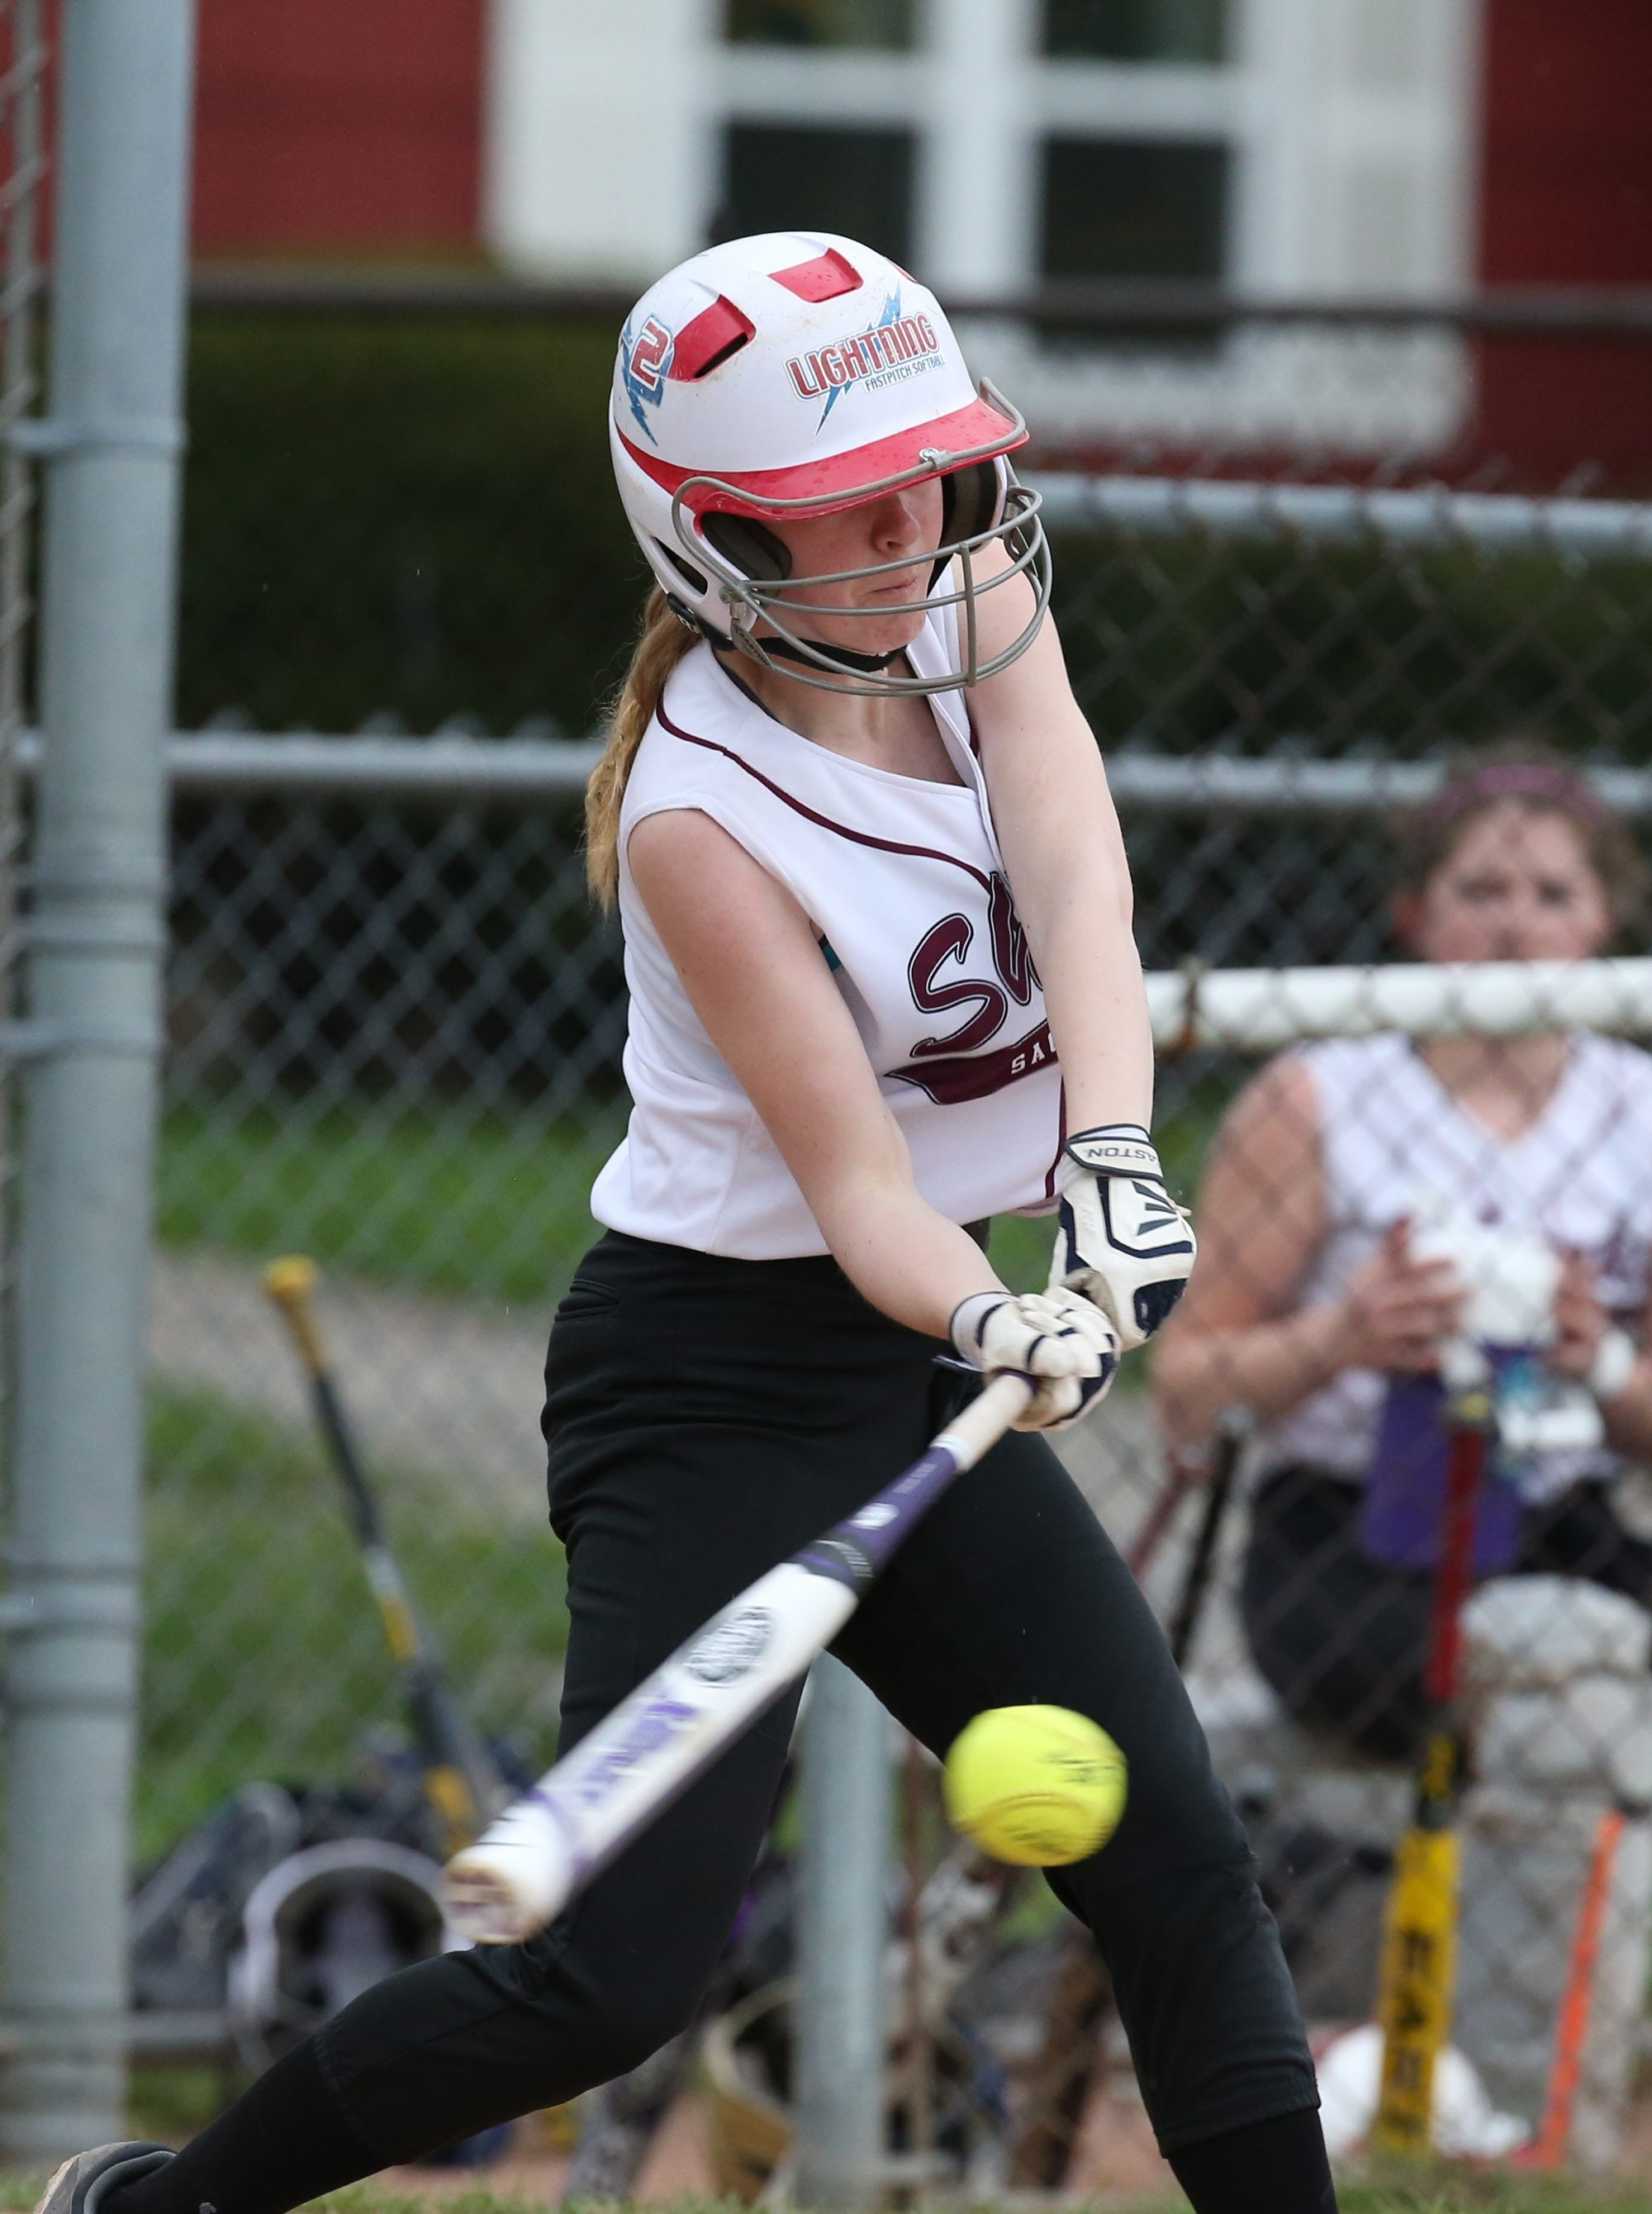 Sacred Heart's Clare Falkowski hits a single against Mount Mercy in the fourth inning at Shoshone Park  in Buffalo,NY on Monday, May 4, 2015.  (James P. McCoy/ Buffalo News)